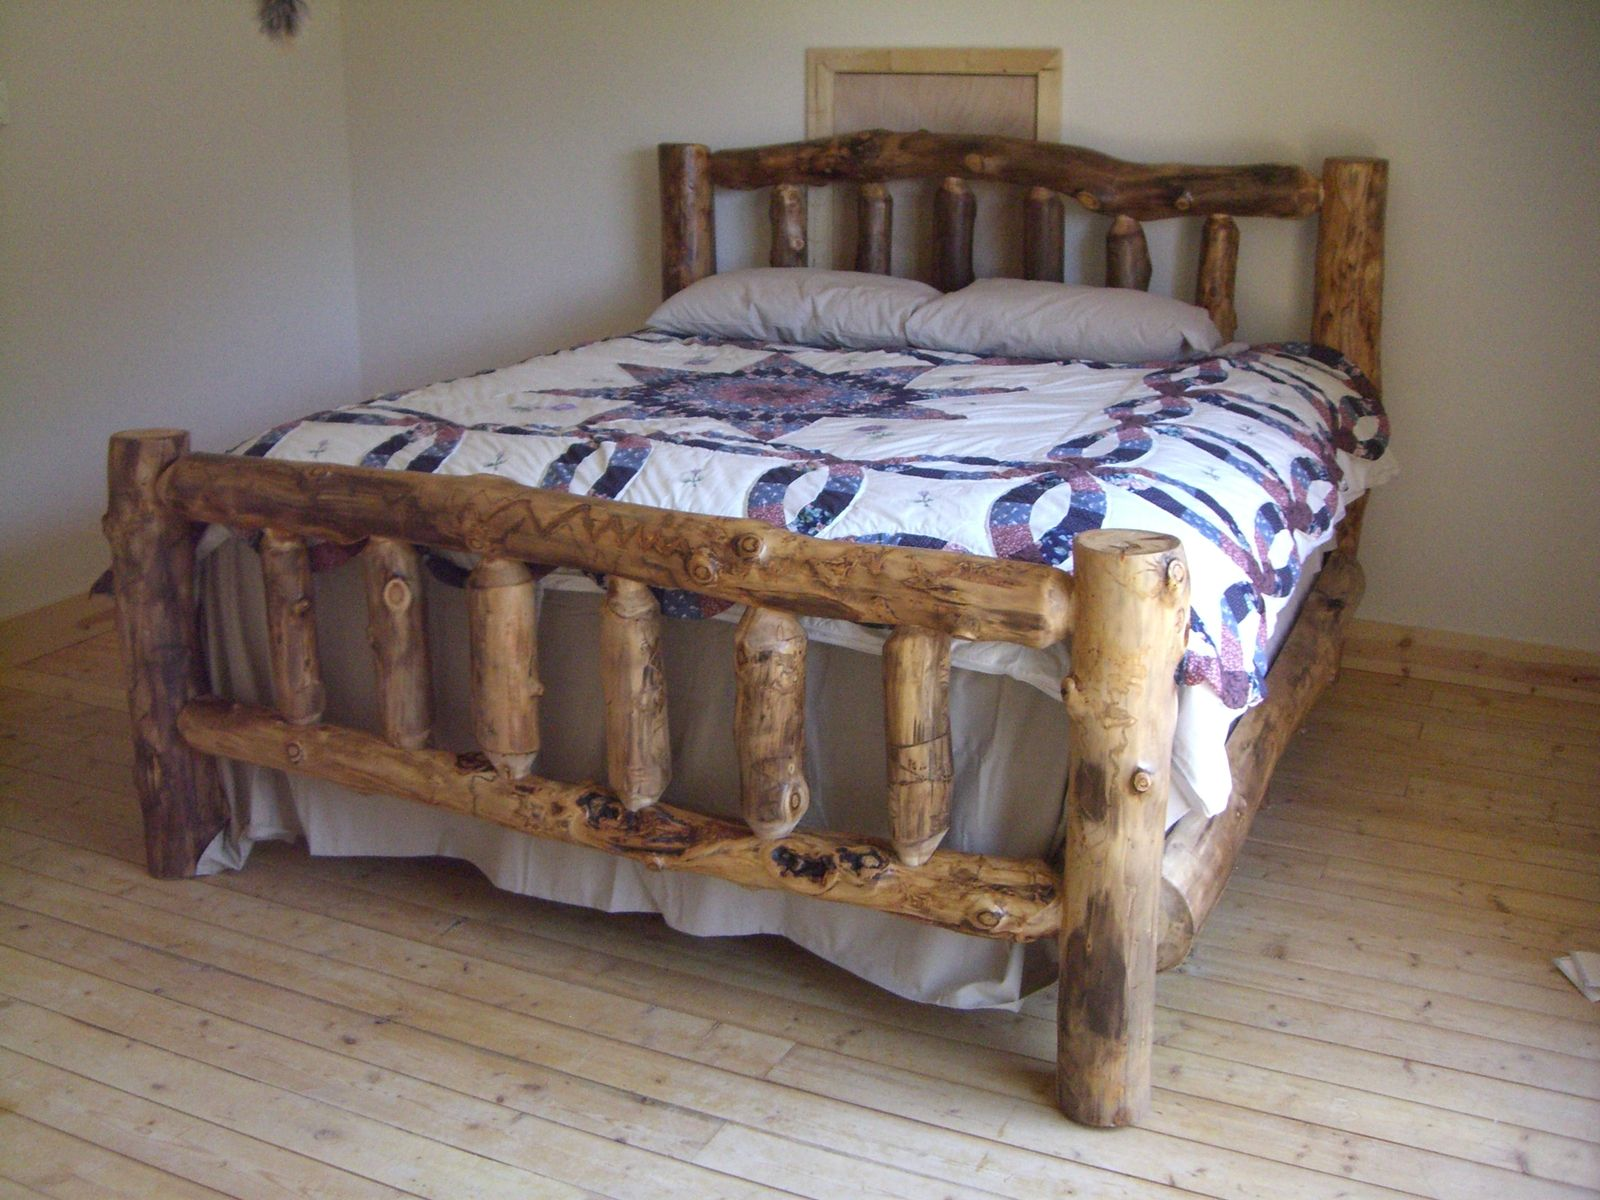 Aspen Log Beds Bed frame and headboard, Reclaimed wood